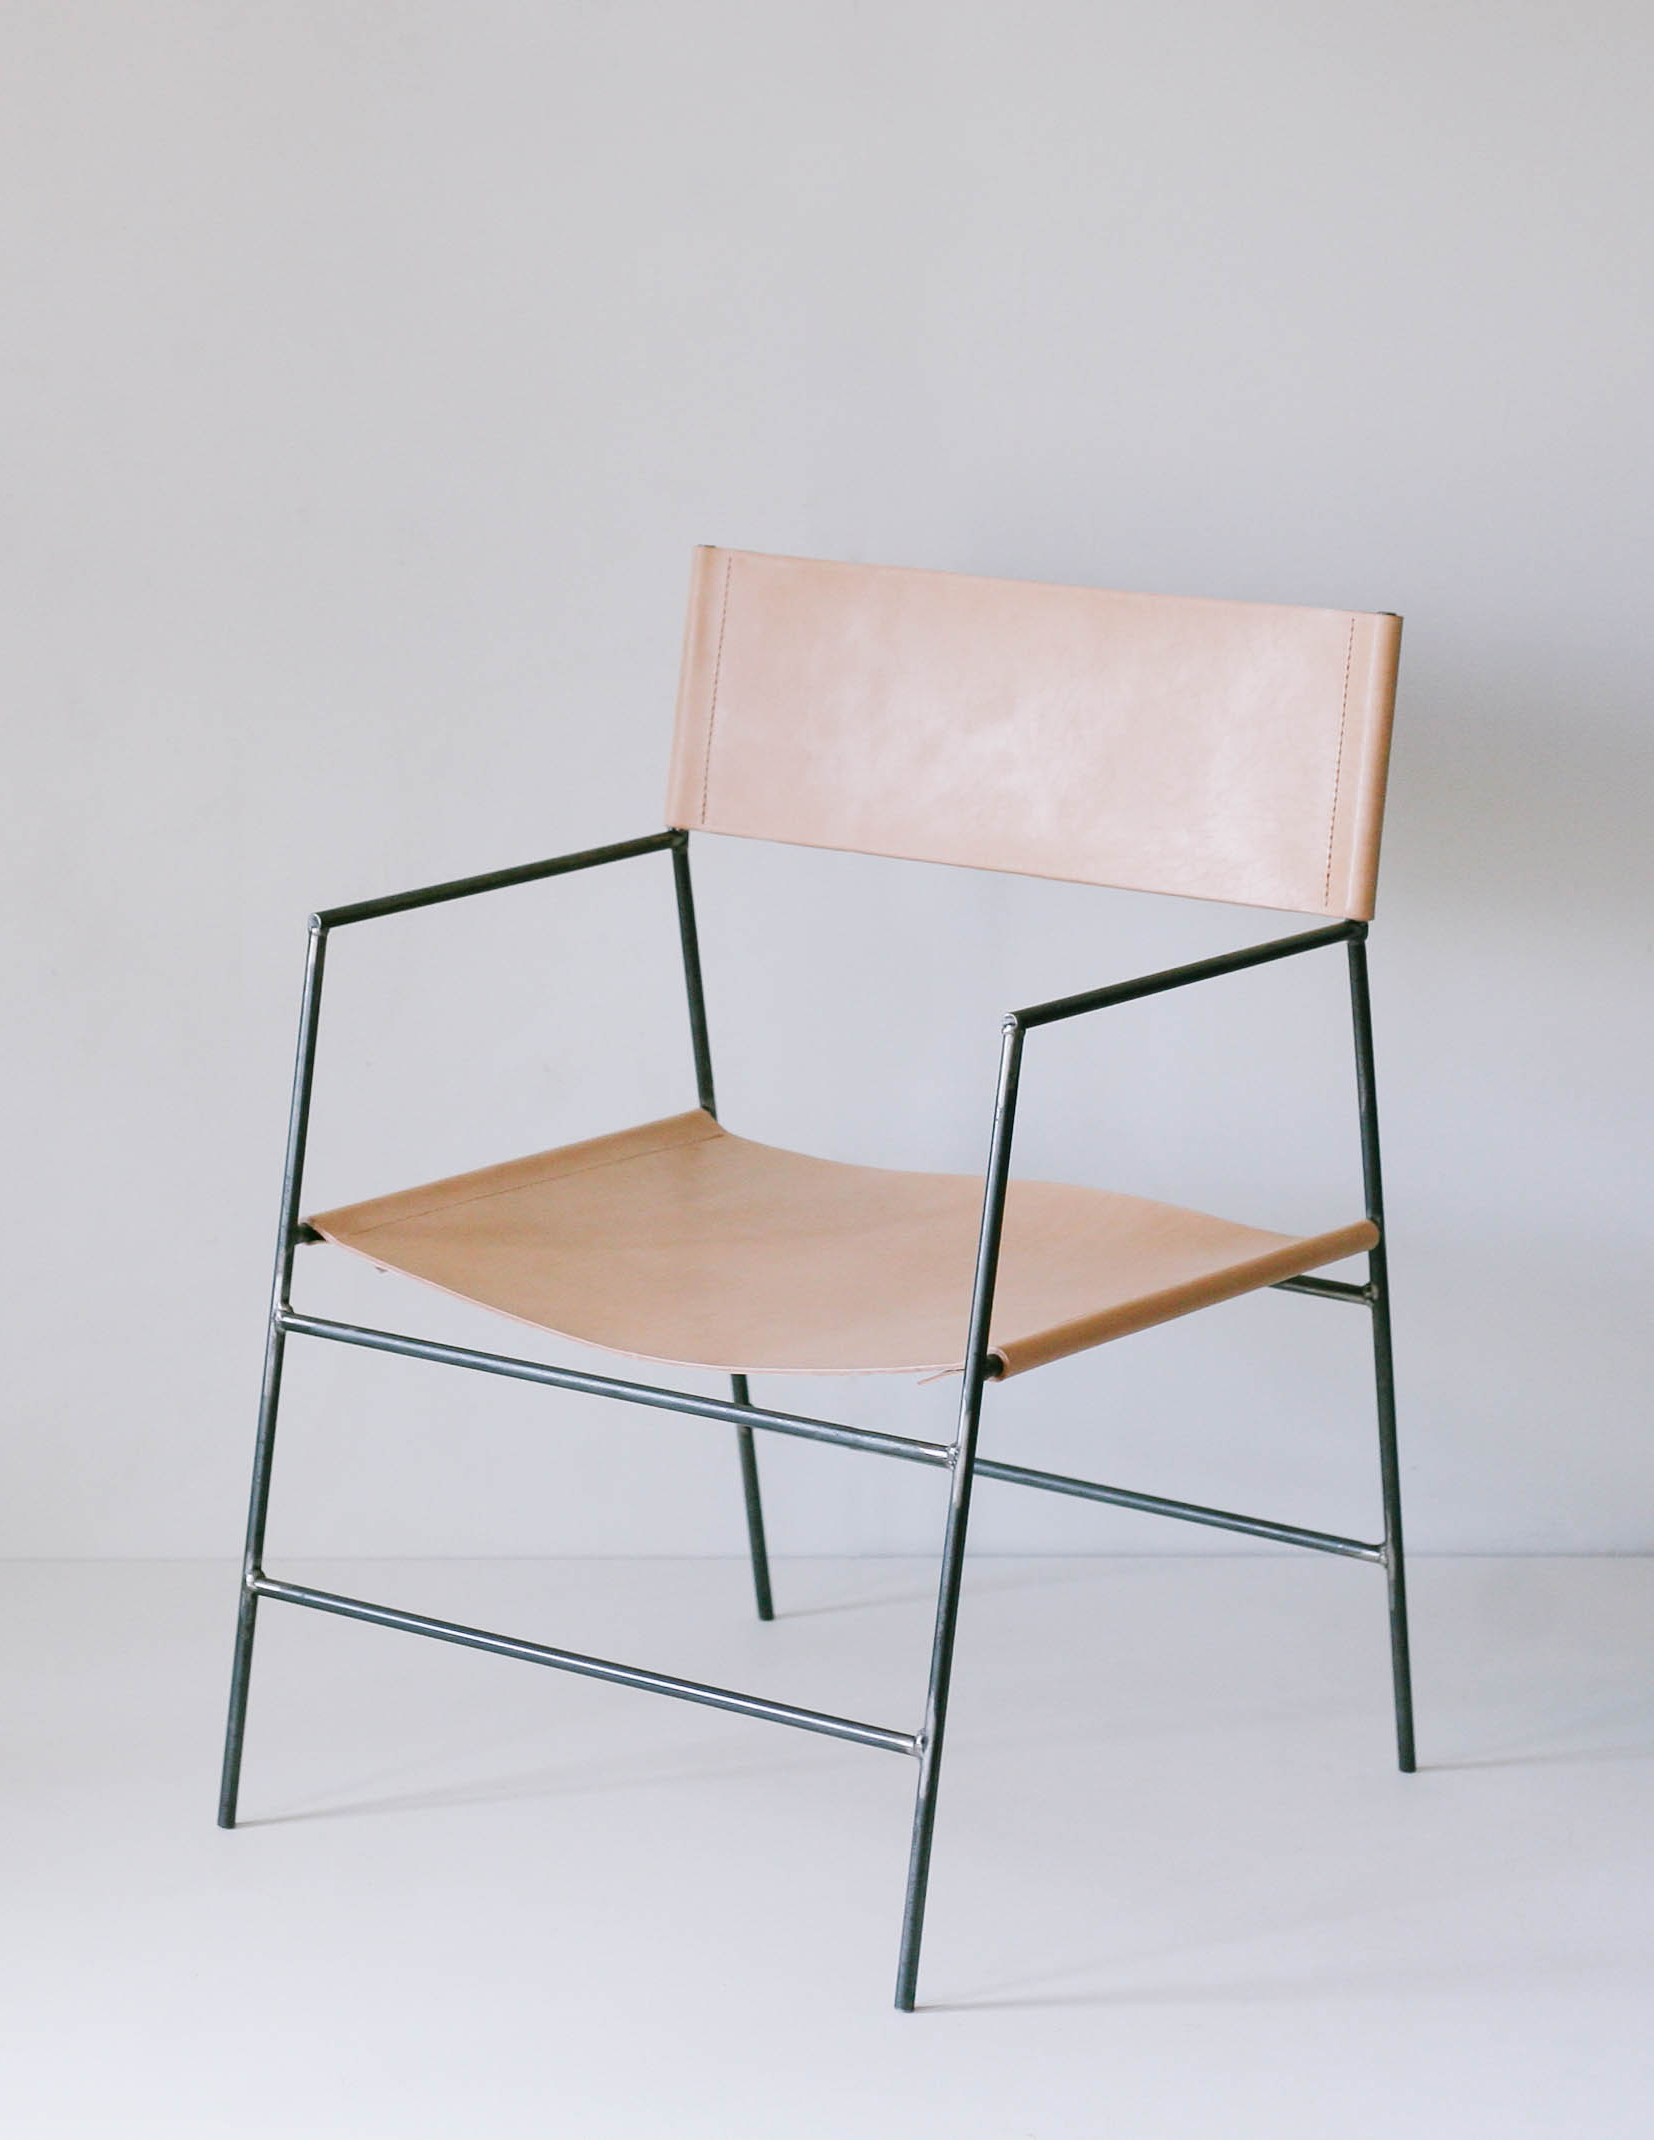 Open Road Chair with KKDW